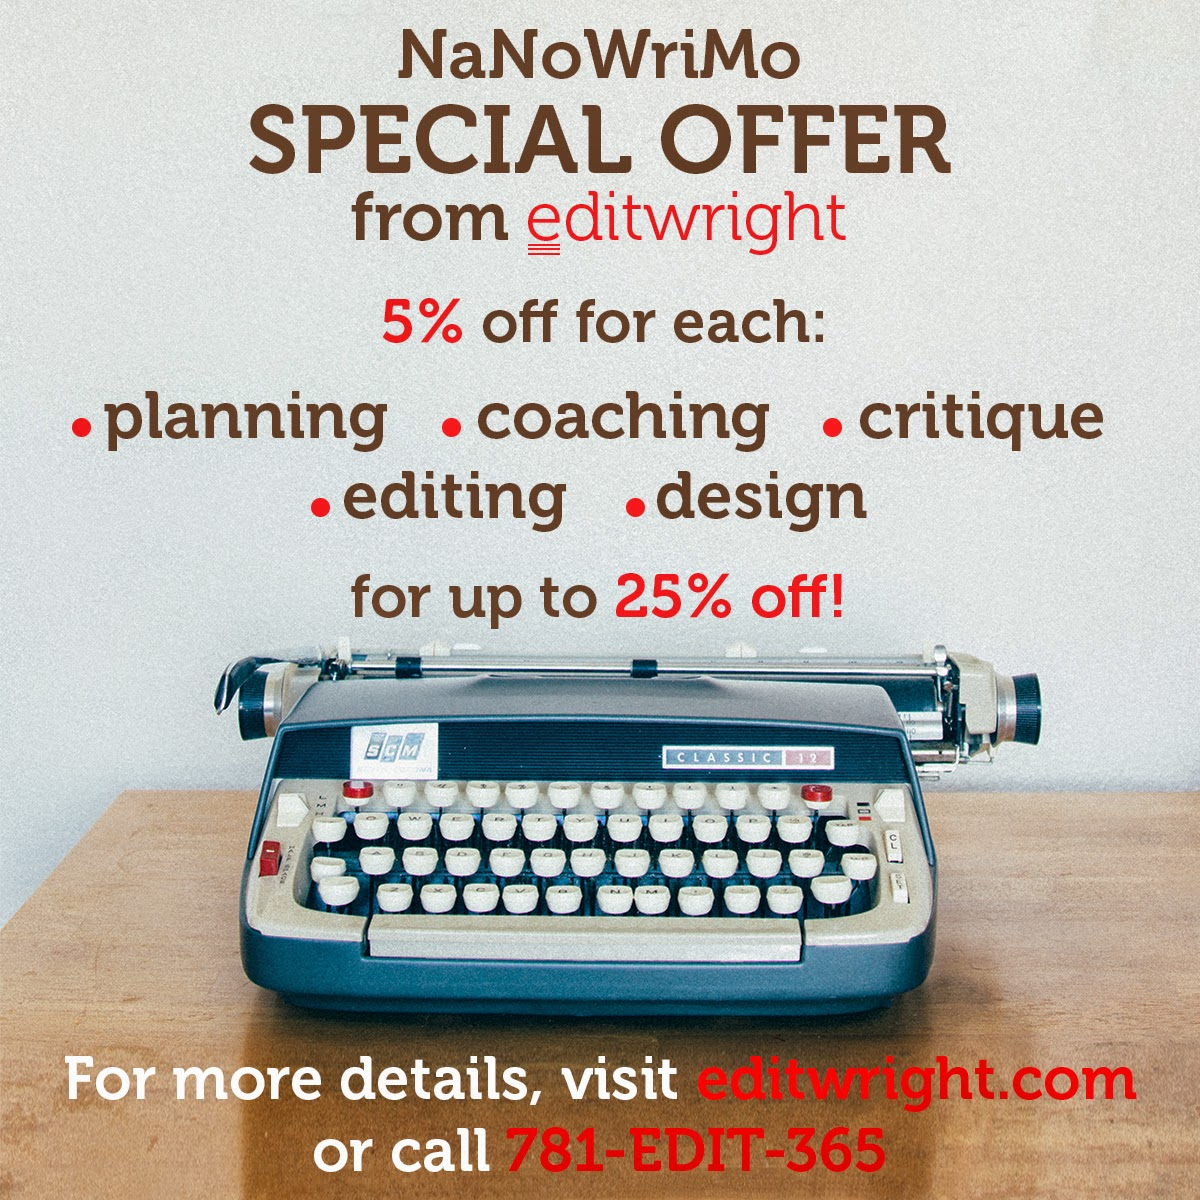 NaNoWriMo Special Offer